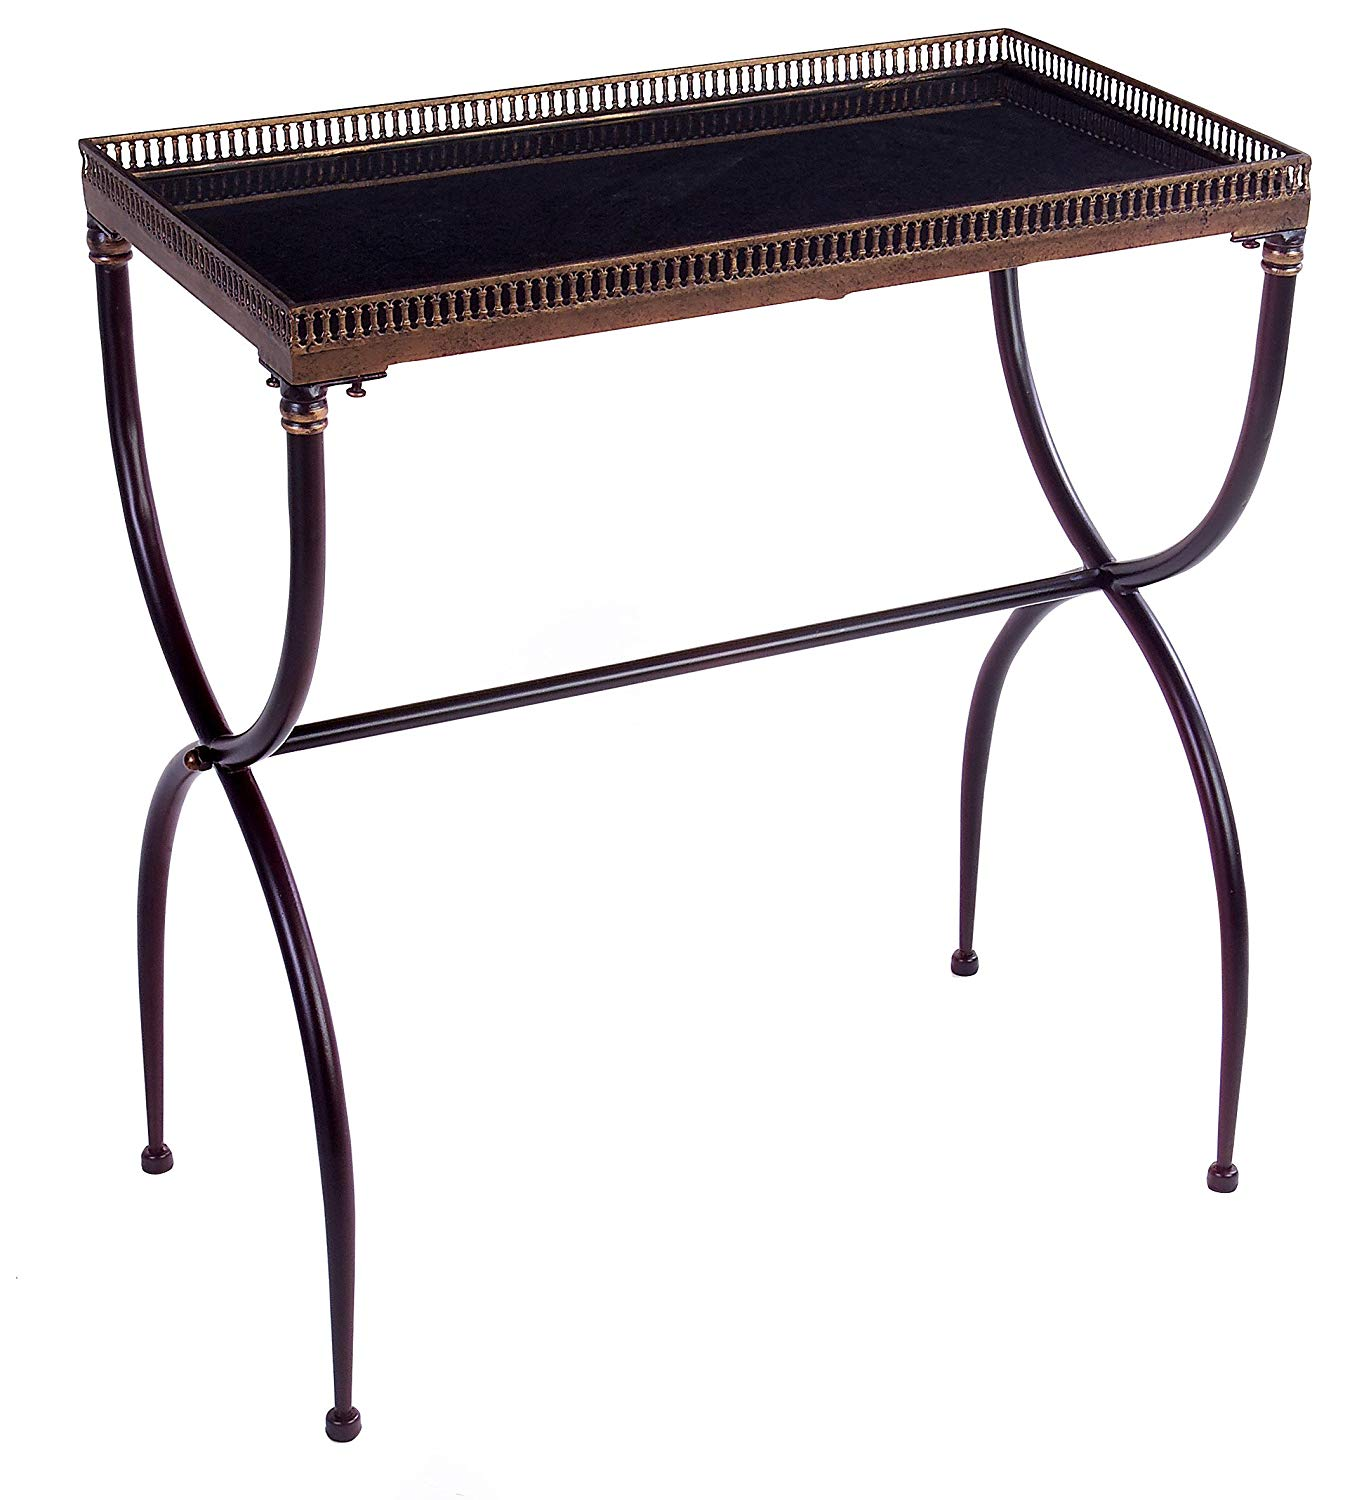 imax rectangular leg accent wrought iron table legs black end tables garden outdoor ikea wooden storage box meyda tiffany dragonfly lamp nautical cocktail nest coffee long narrow